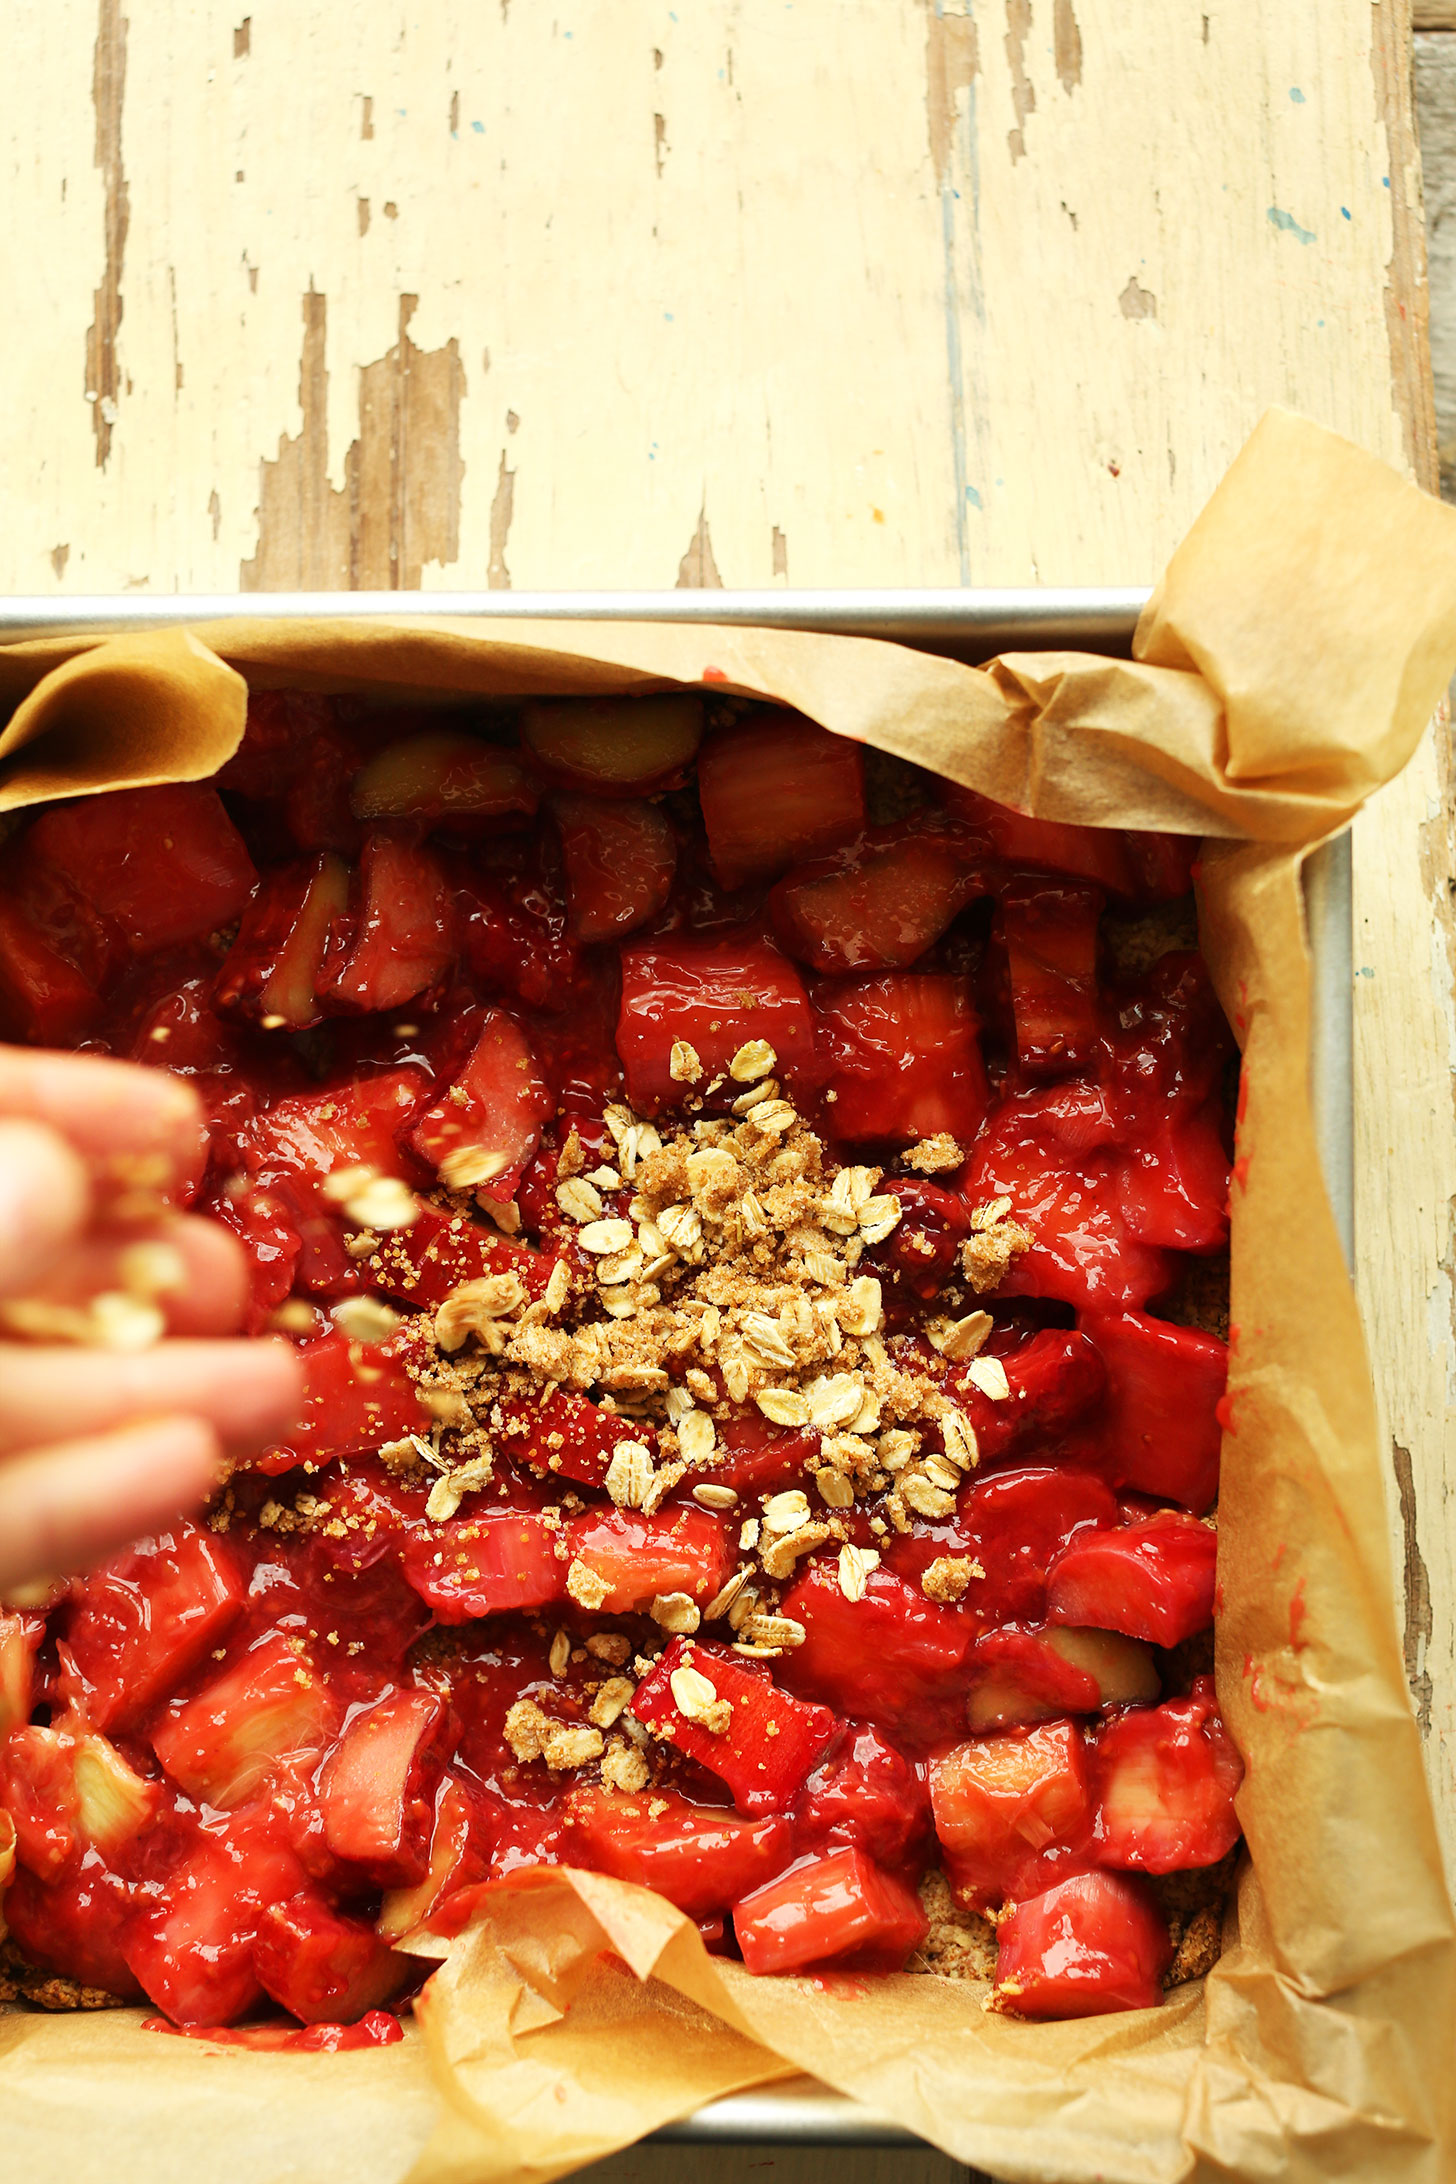 Sprinkle crumble topping onto our gluten-free vegan Strawberry Rhubarb Bars